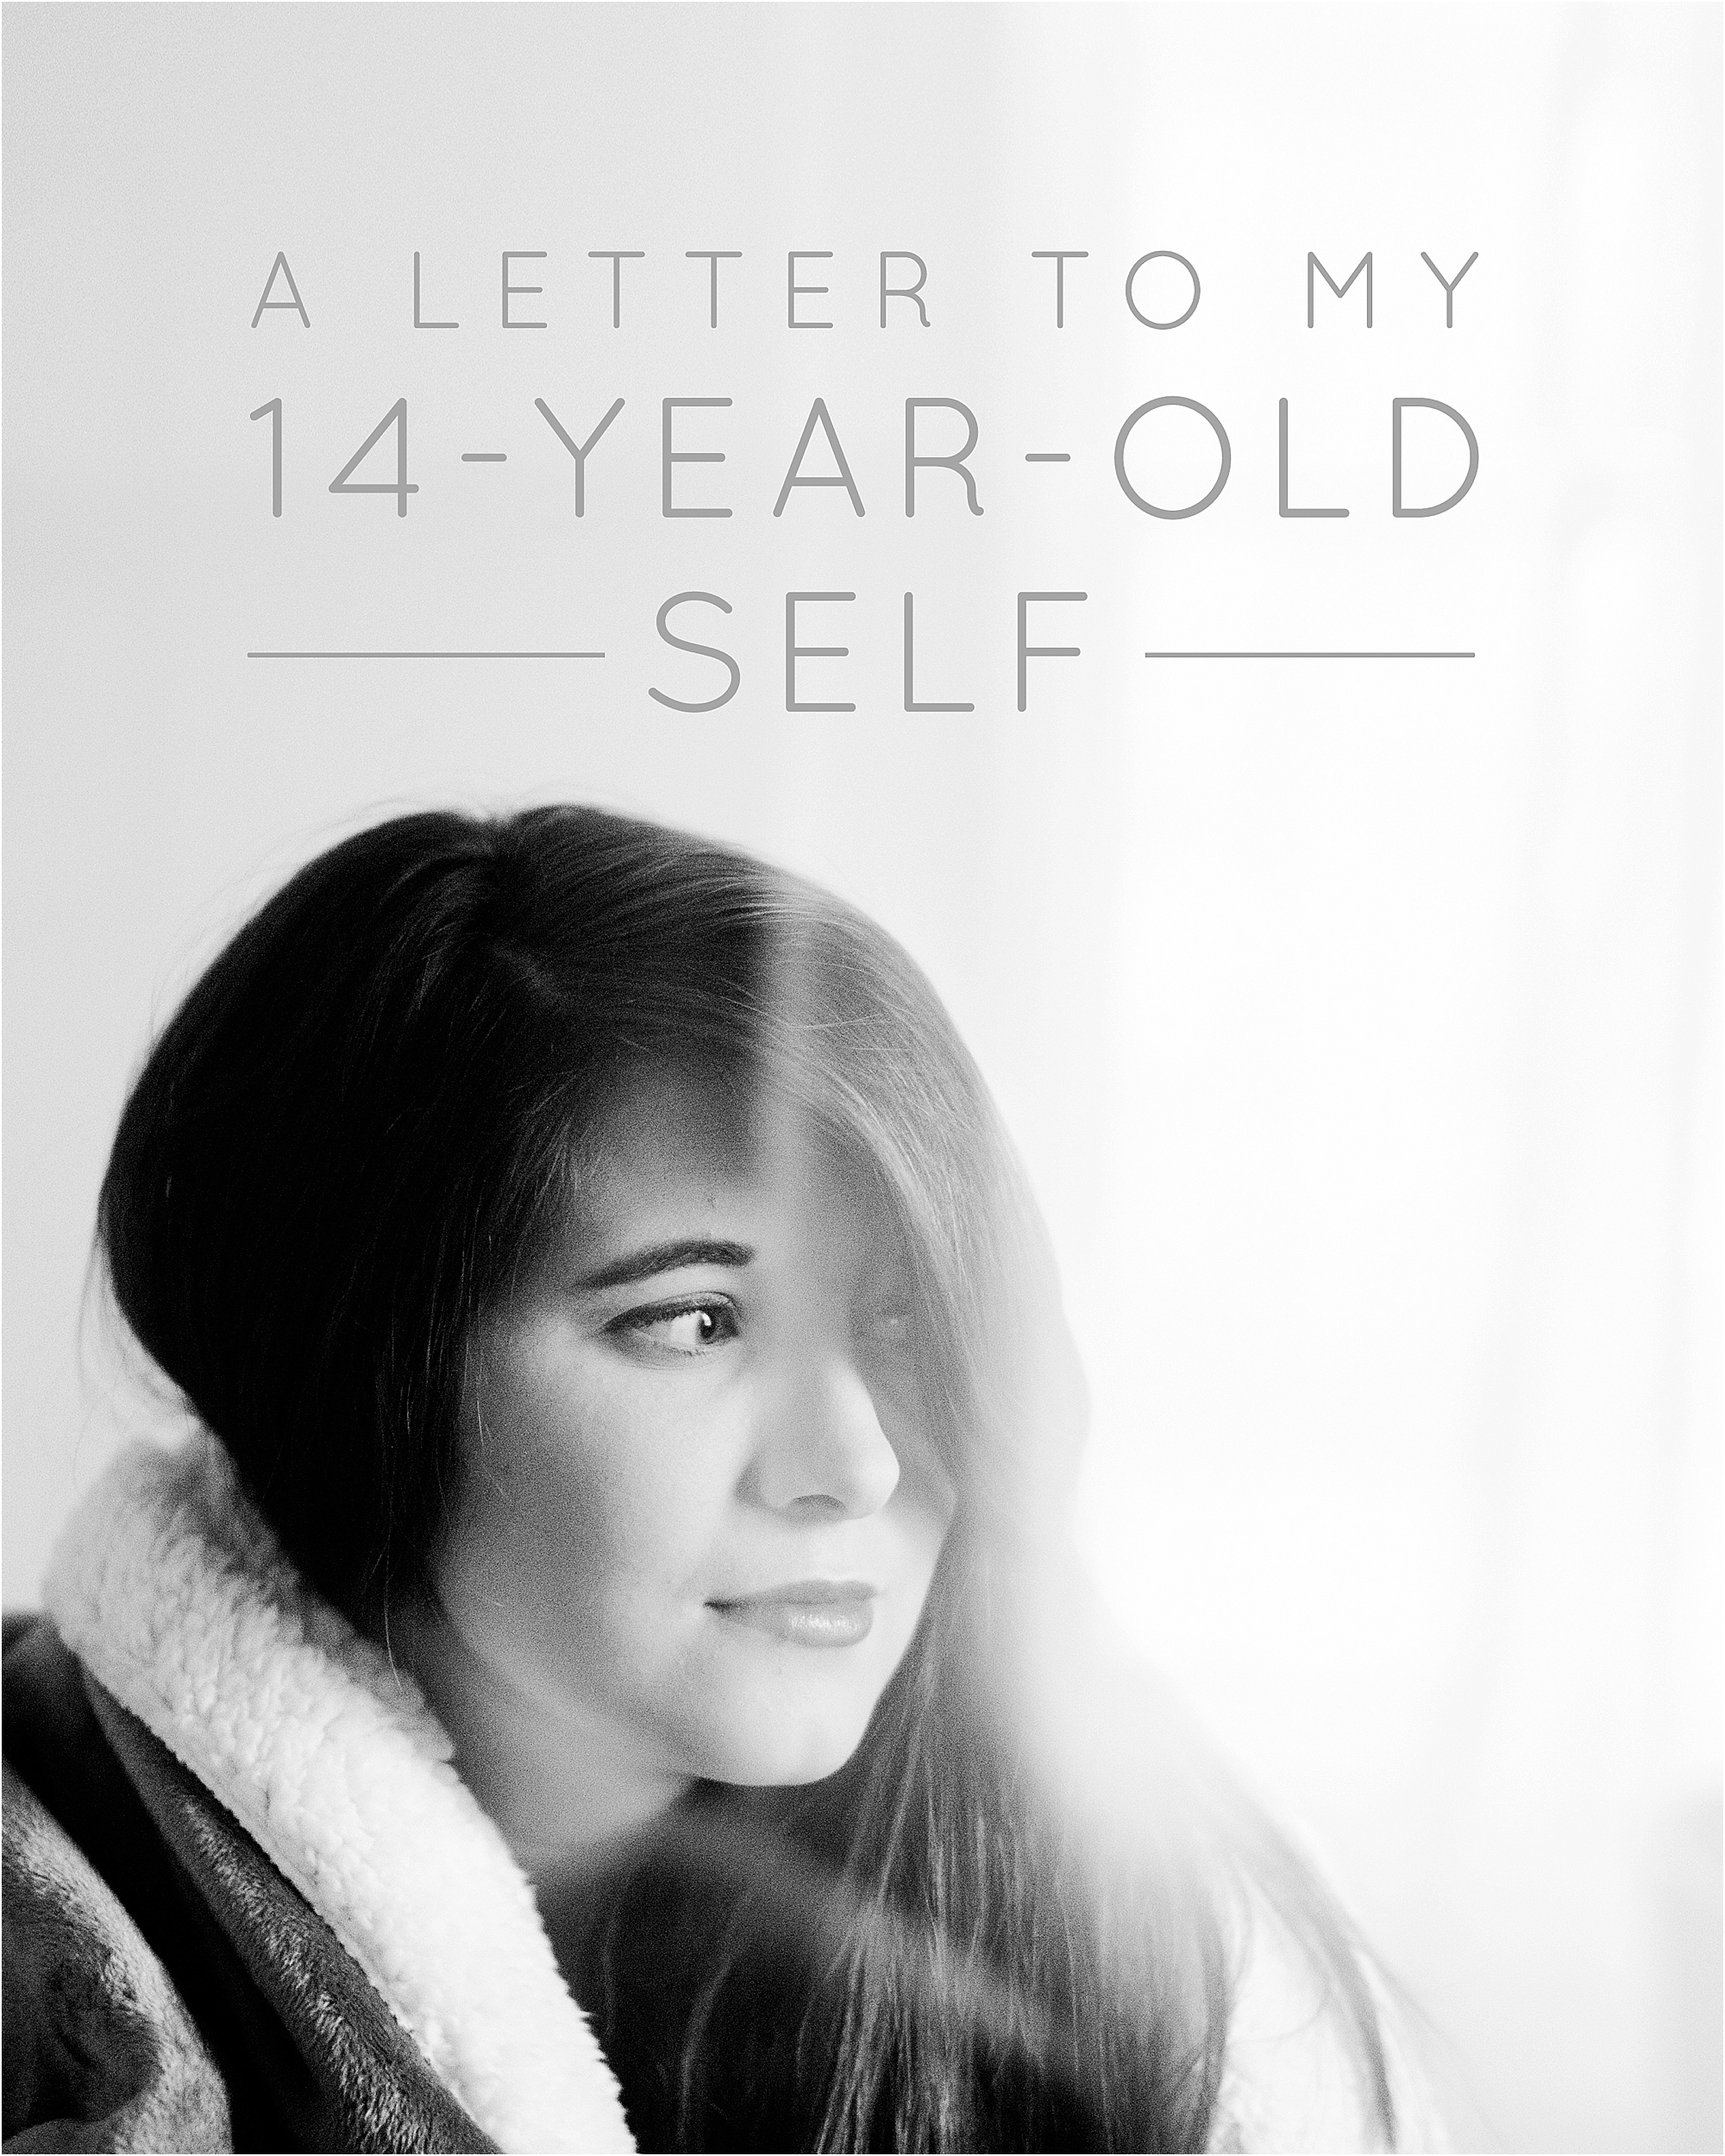 A letter to my 14-year-old self - The Jordan Brittley Blog